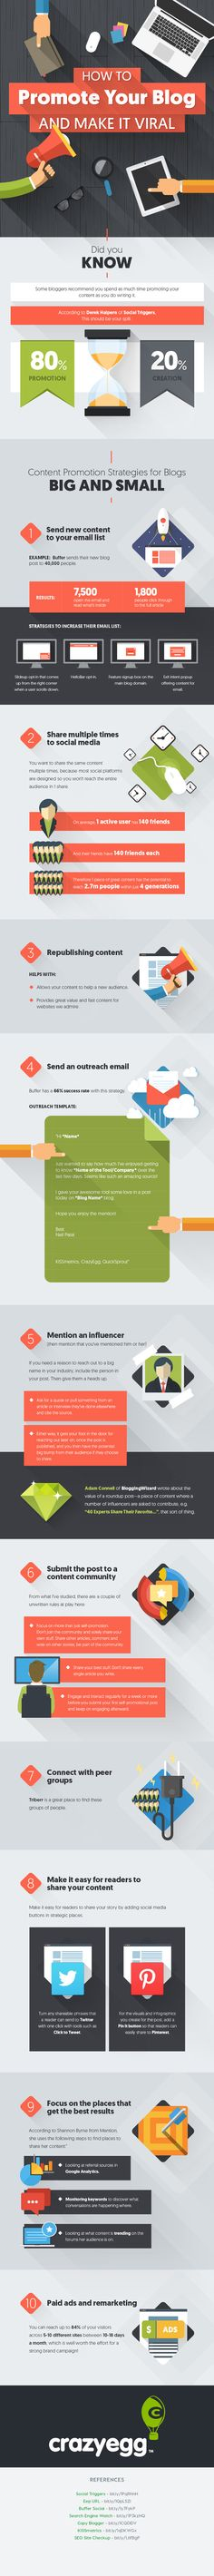 The 80:20 Rule of Blogging: How to Promote Your Blog & Make It Go Viral [INFOGRAPHIC]